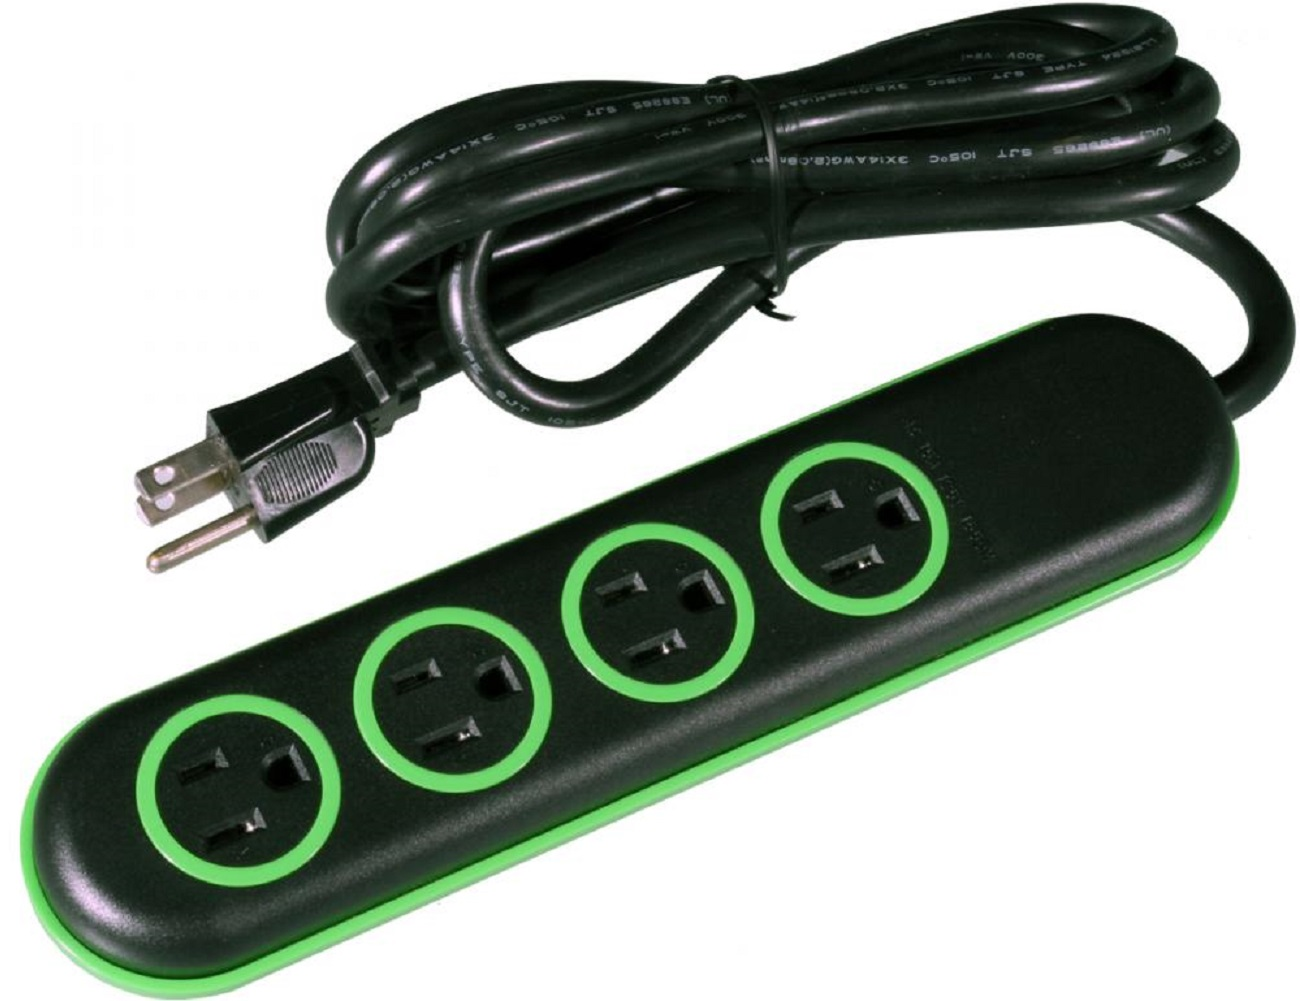 Water Resistant Power Strip by Wet Circuits